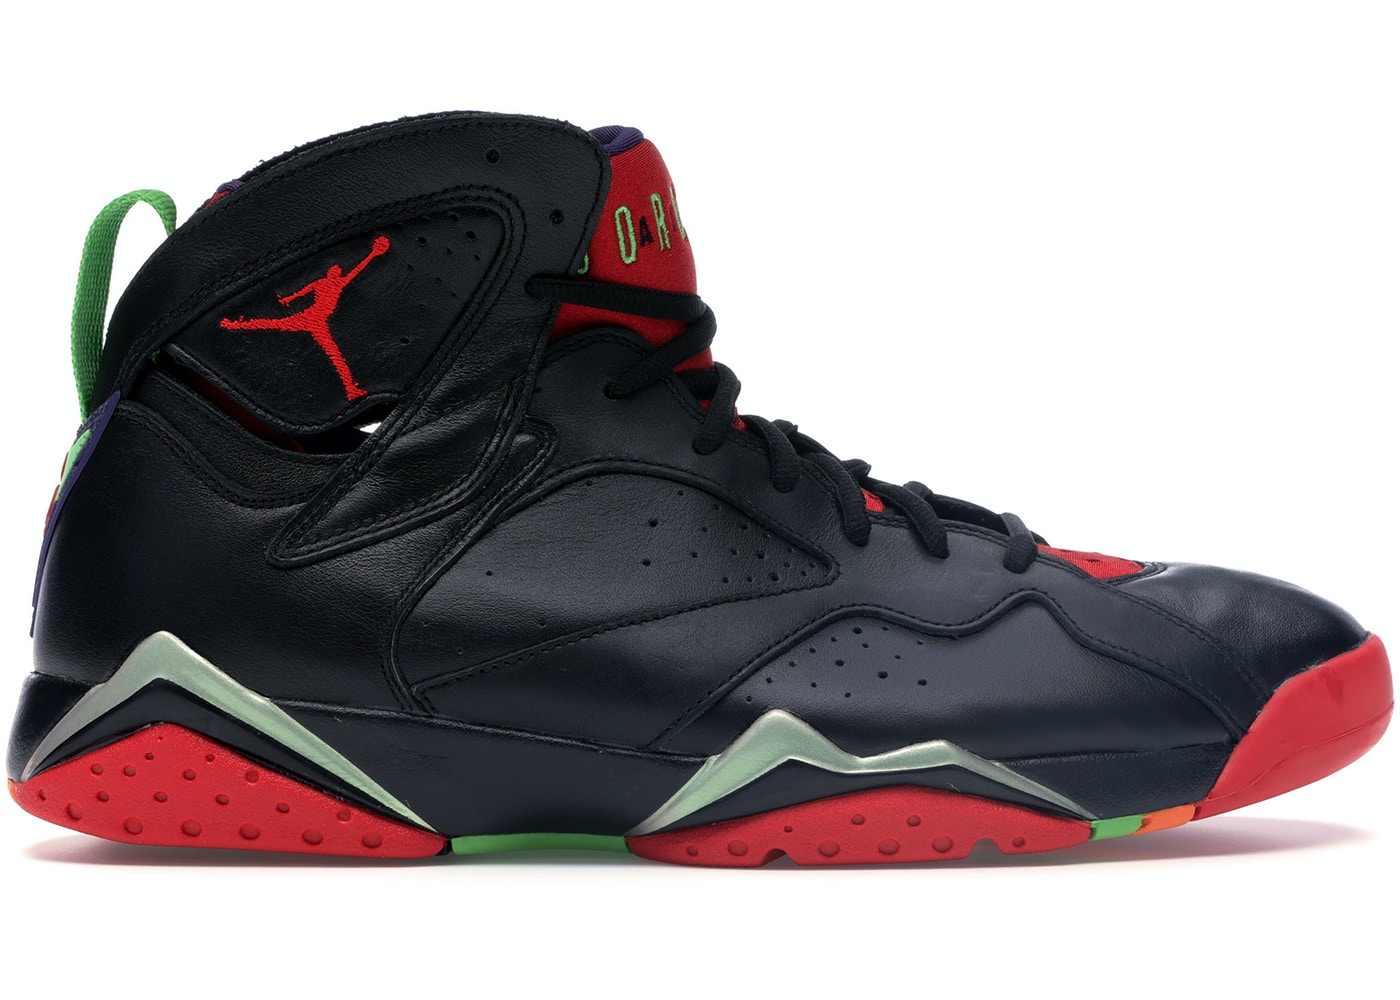 timeless design 144f1 762b2 Jordan 7 Retro Marvin the Martian - 304775-029